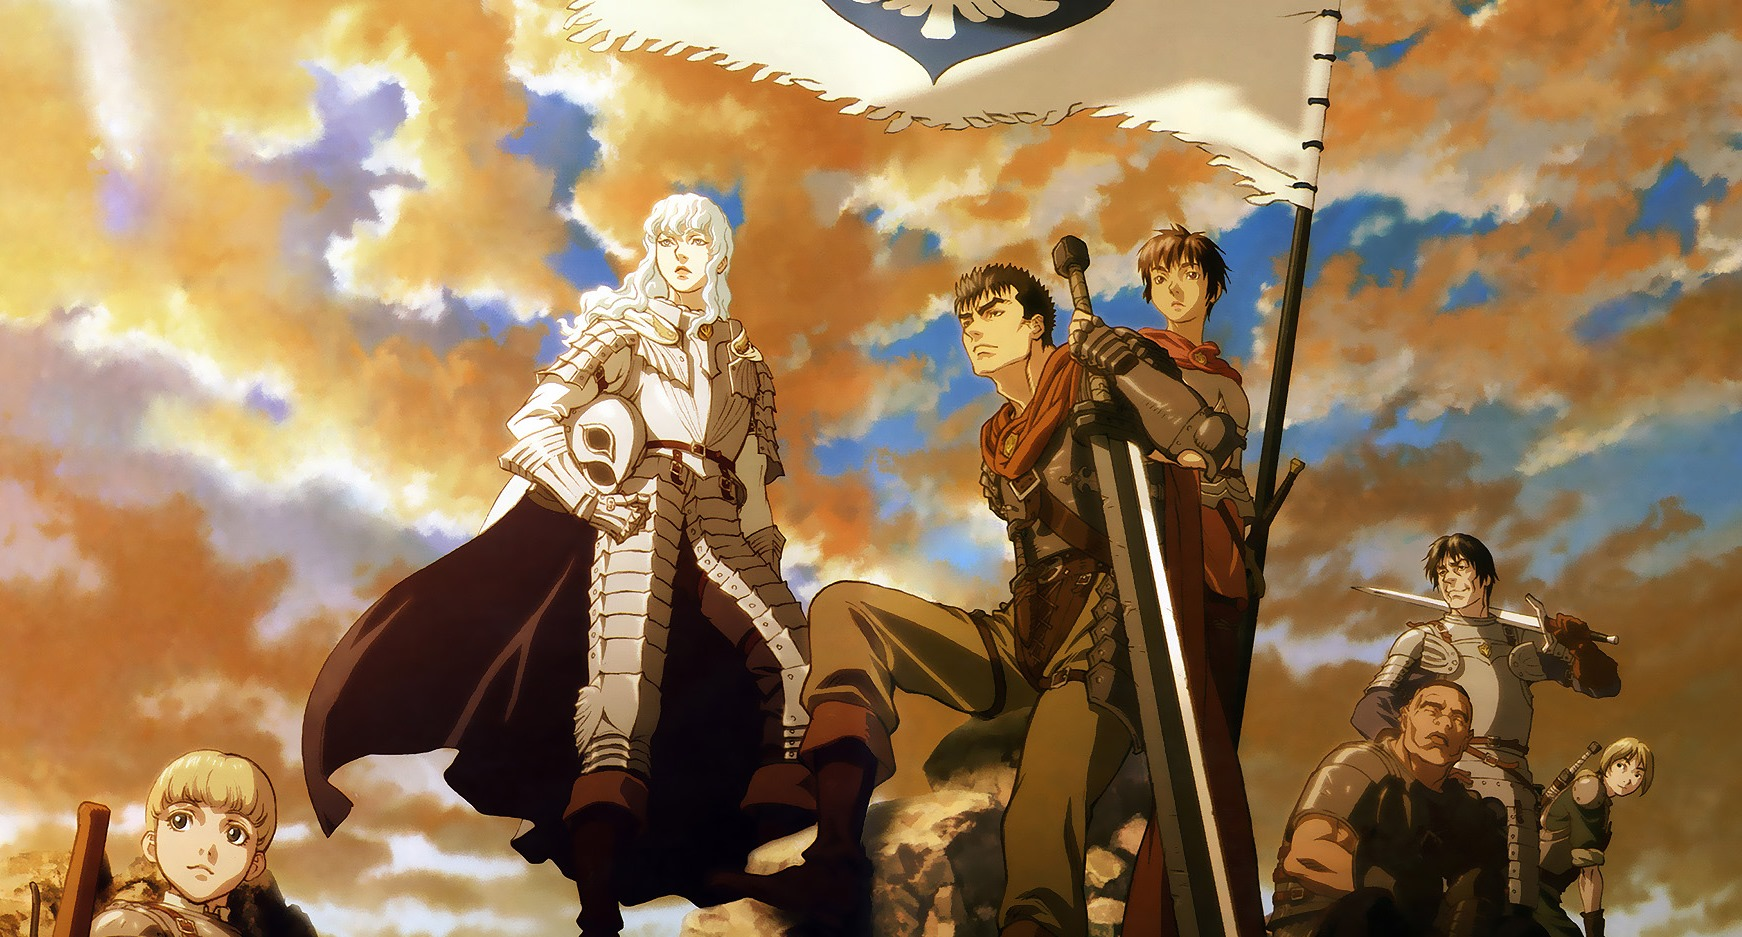 berserk the golden age arc 2 - the egg of the king